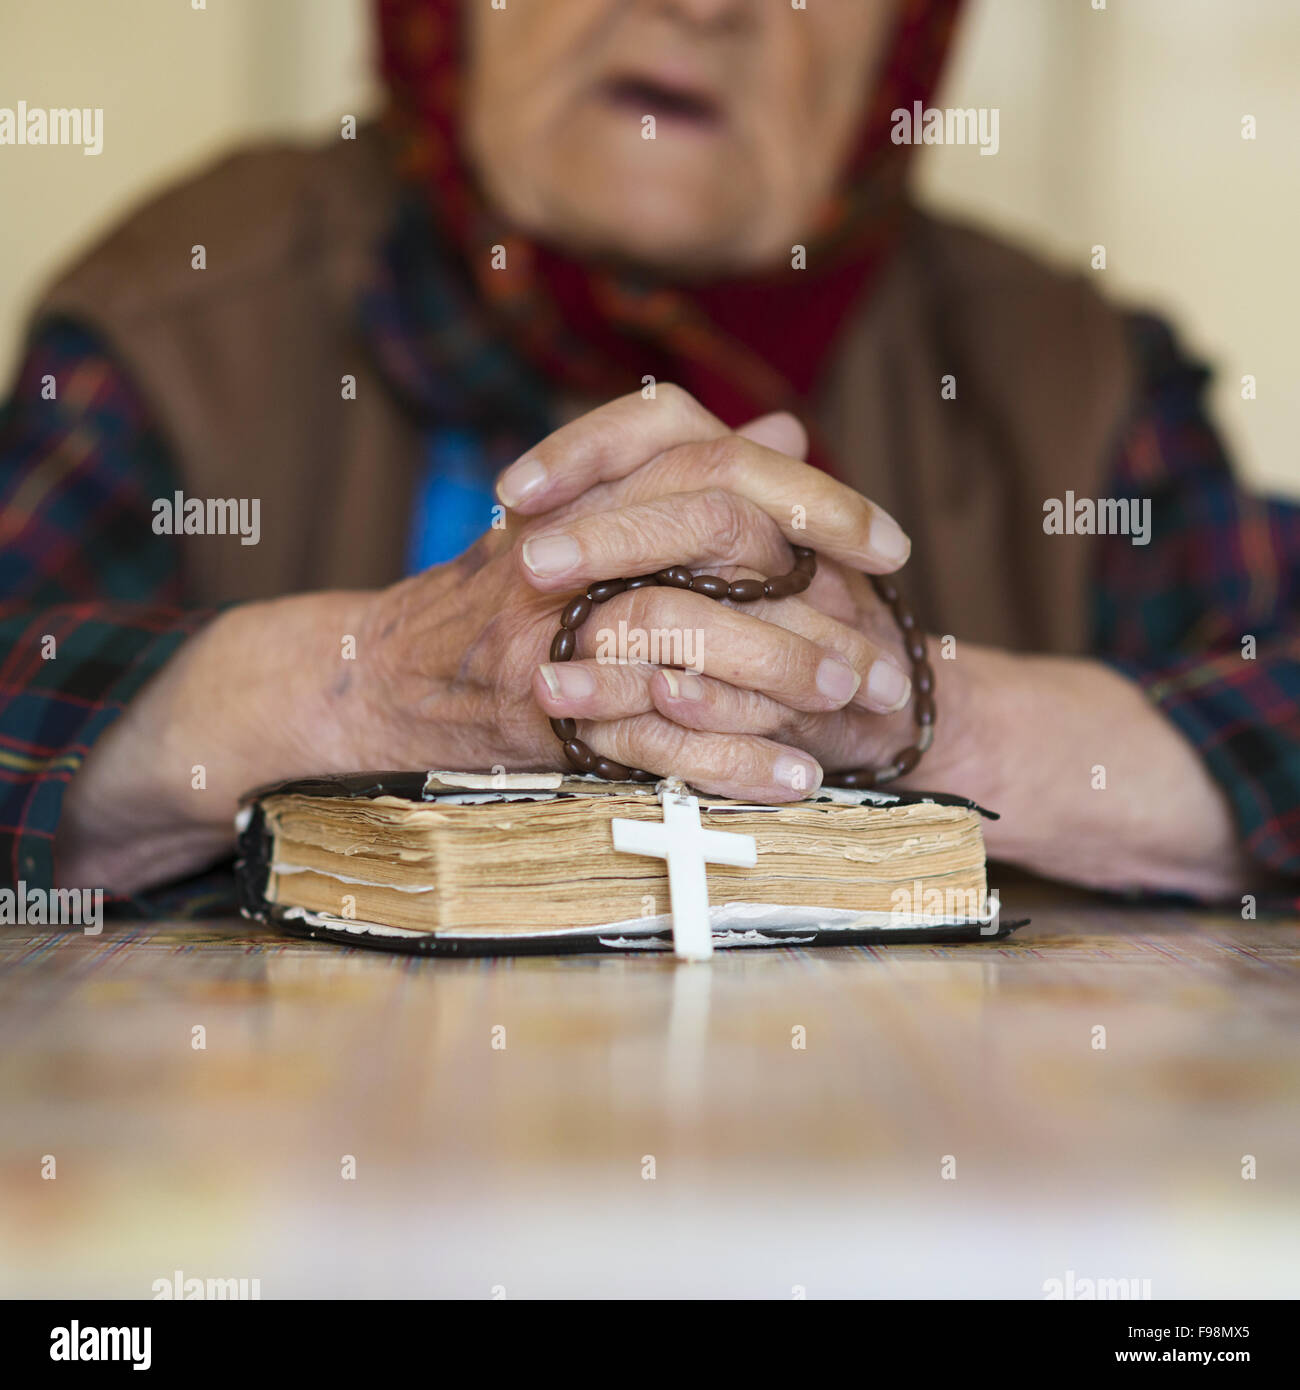 Detail Of Very Old Woman In Head Scarf Praying Stock Photo 91775773